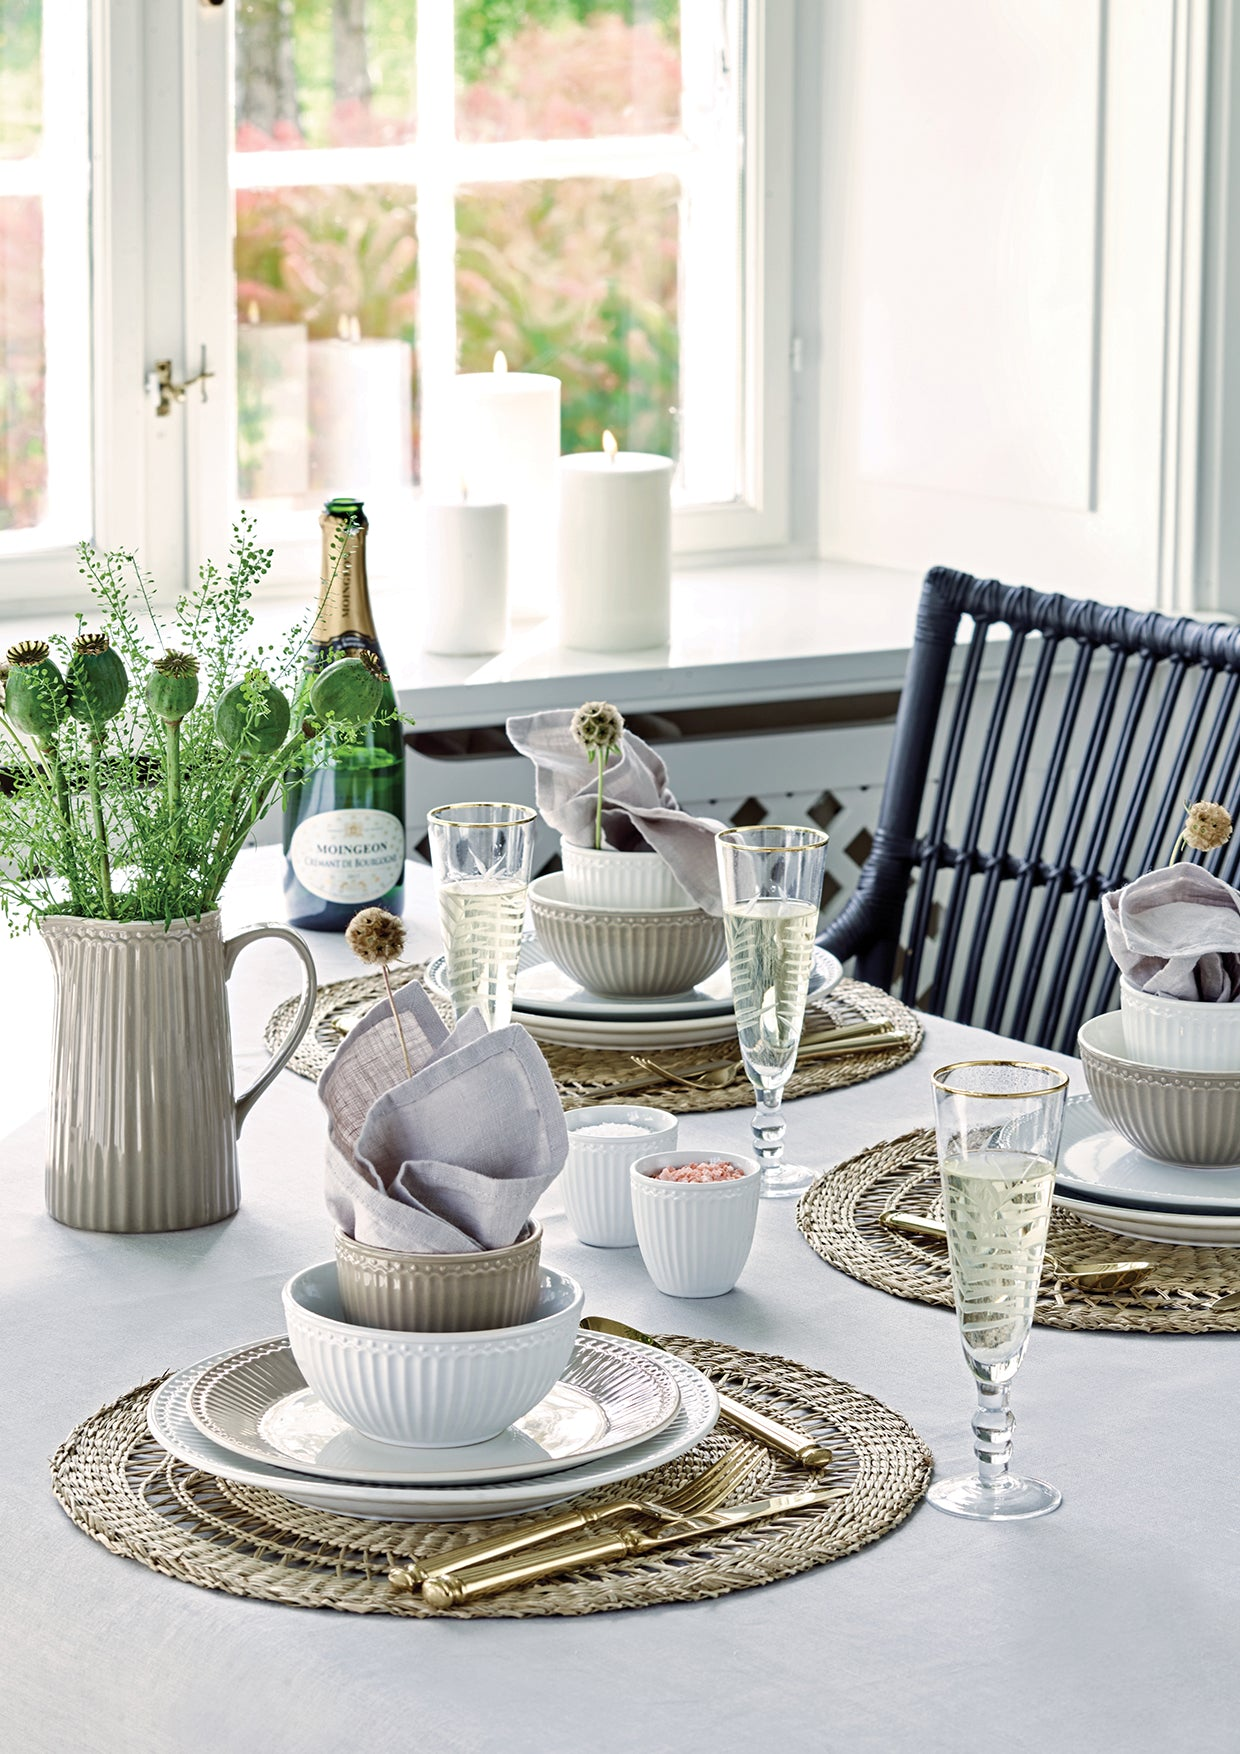 Greengate-Jug-Krug-Alice-weiss-everyday